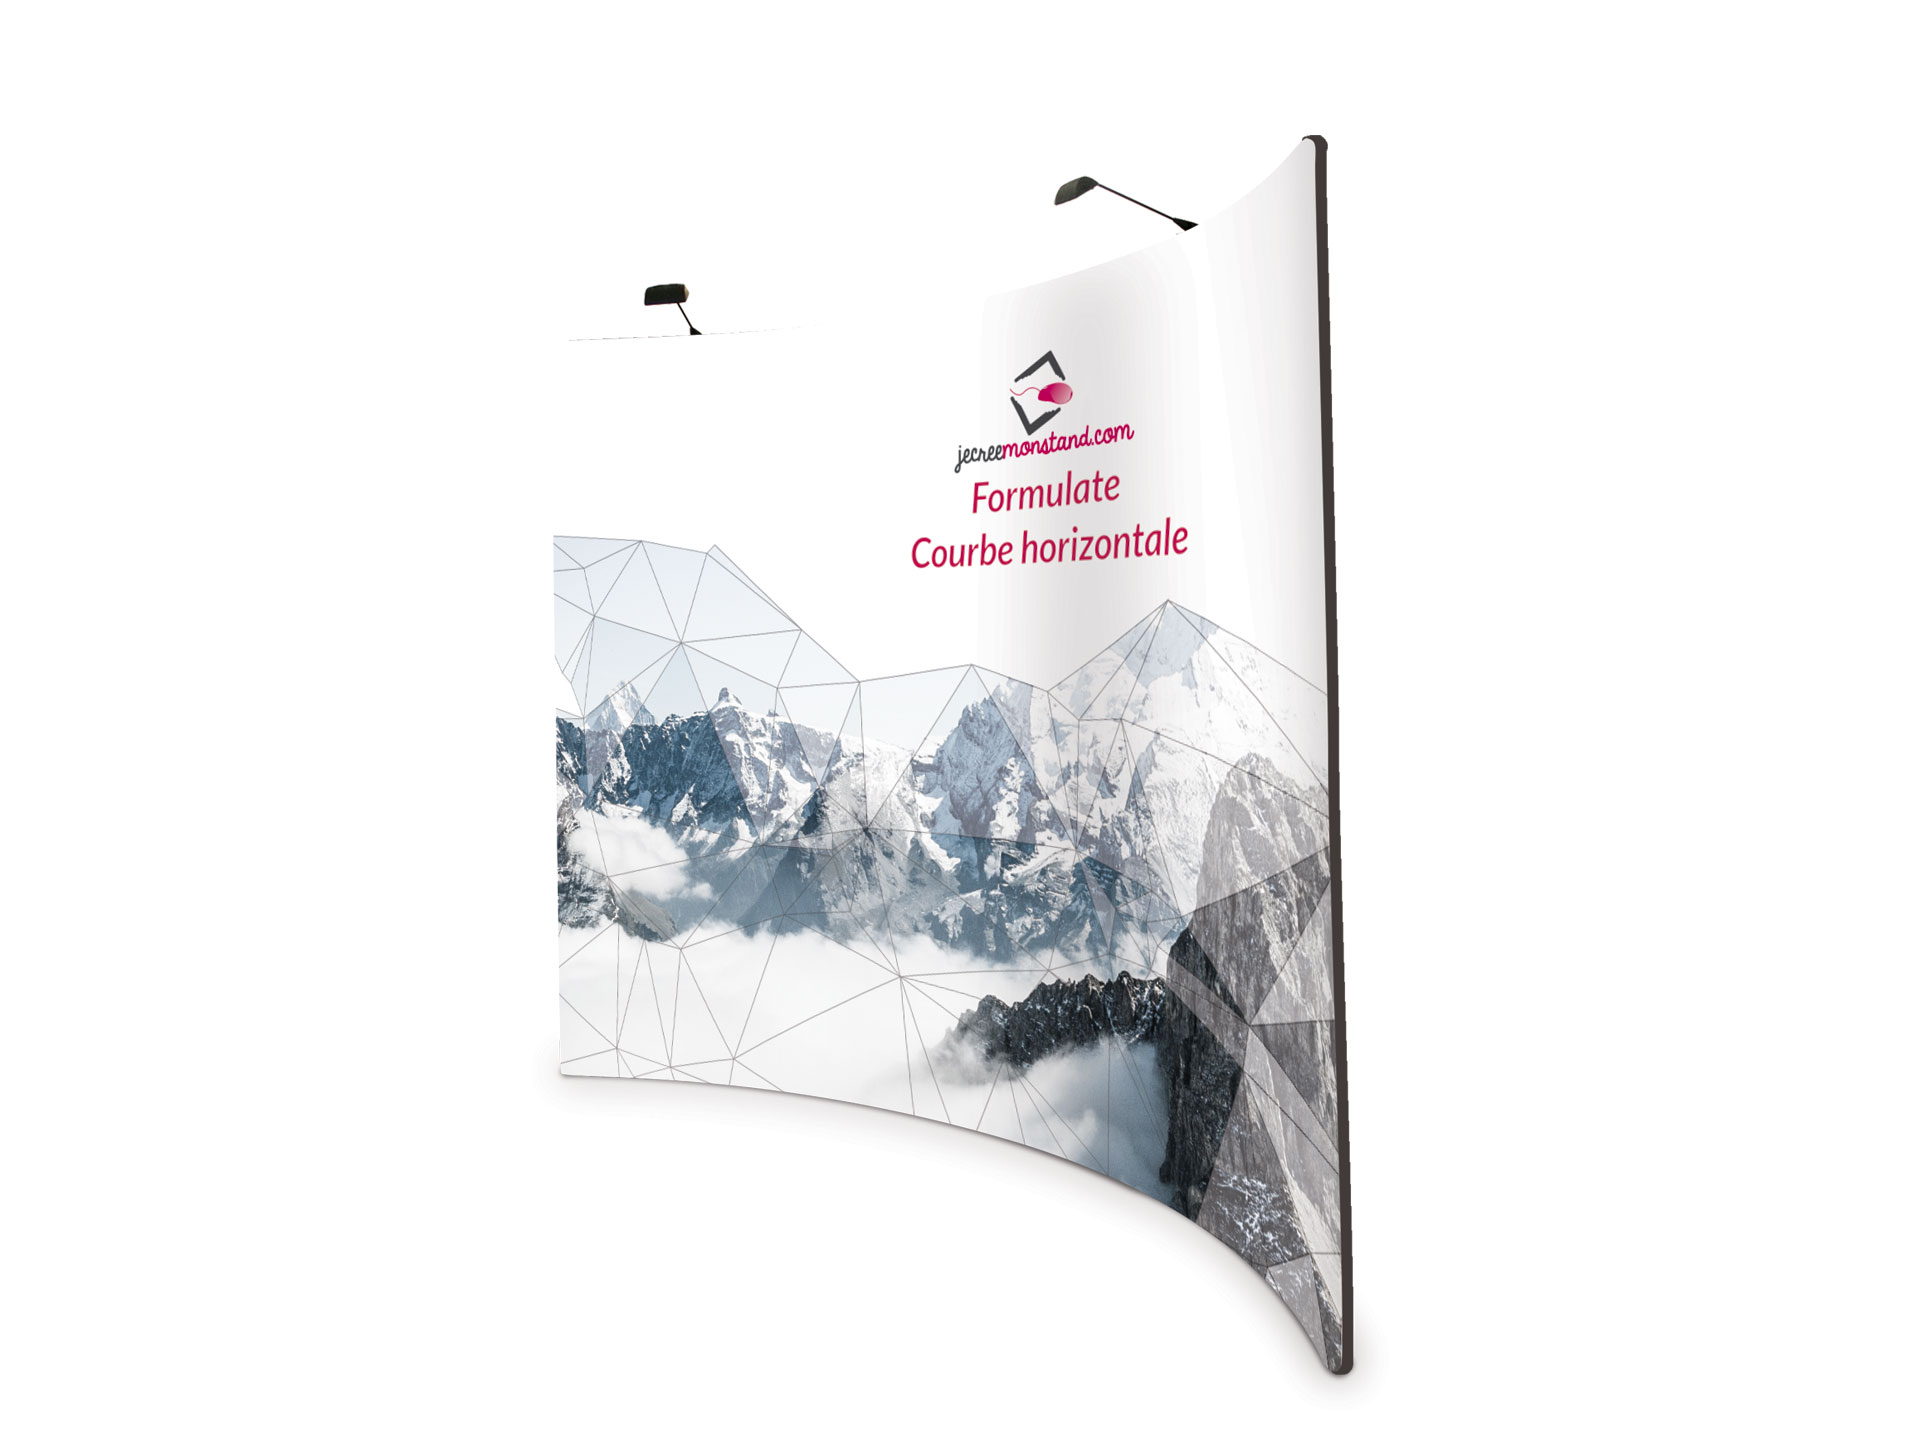 Mur d'image recto-verso courbe horizontal pour stand exposant